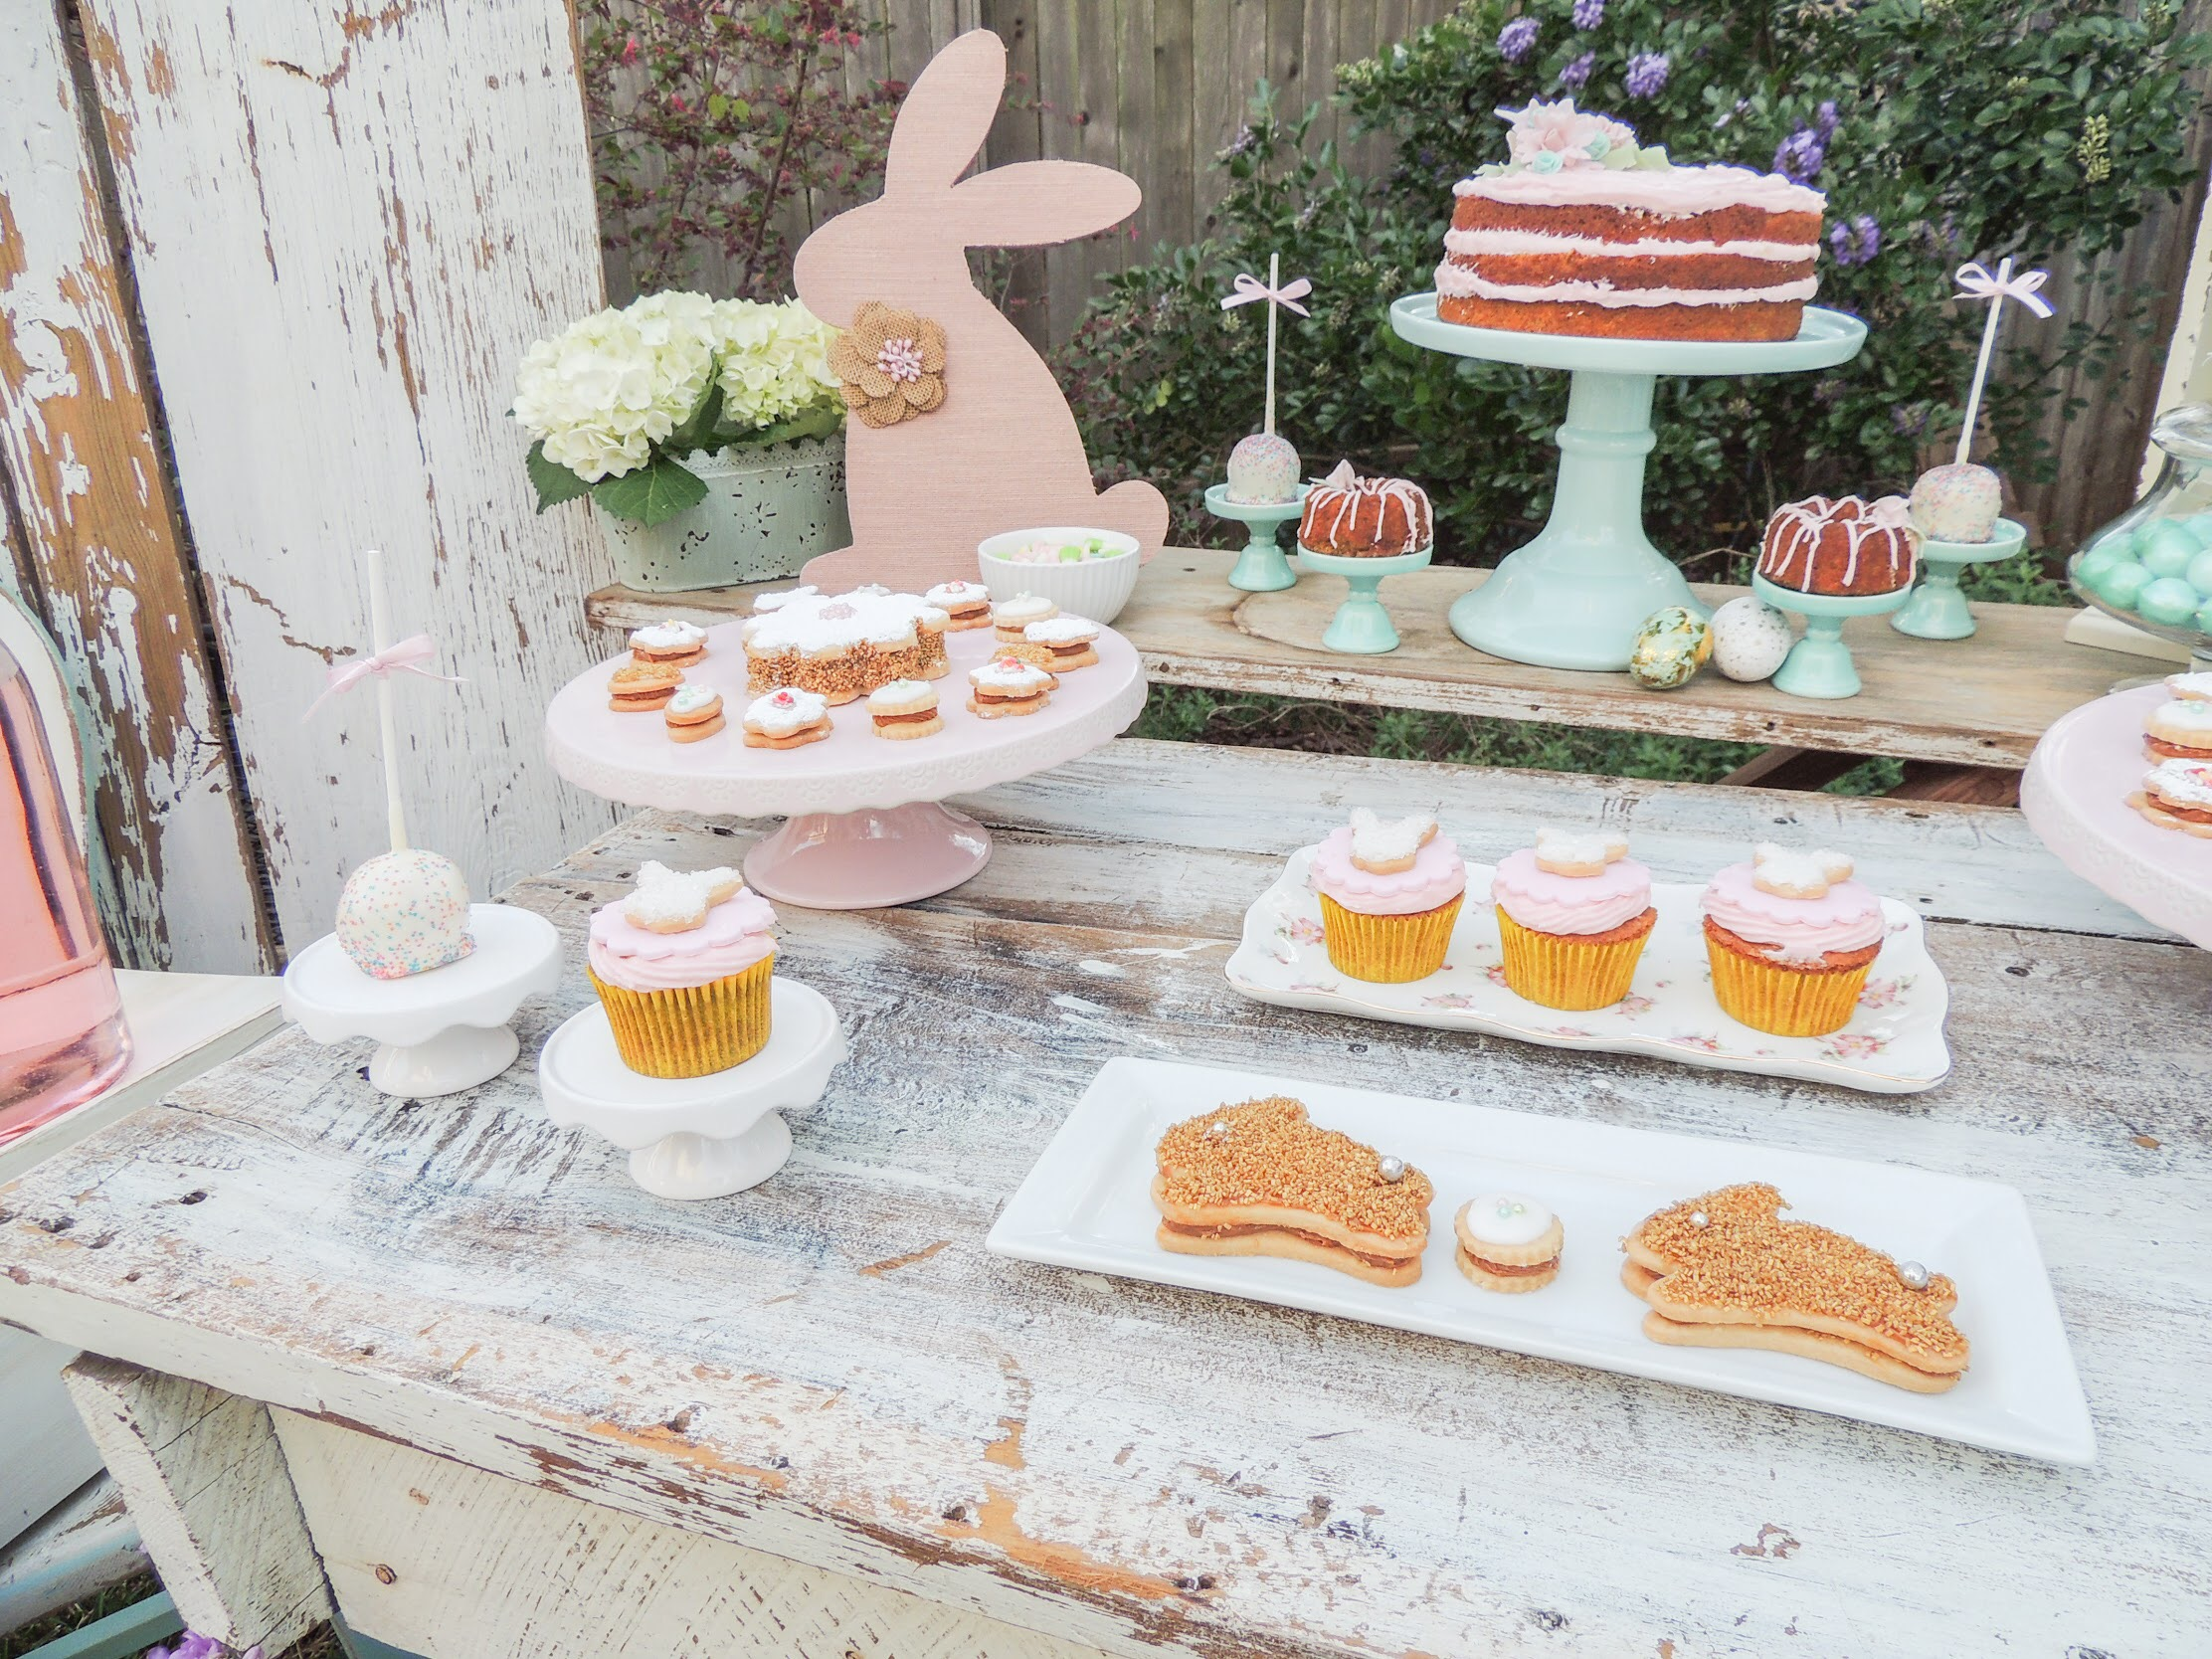 Super cute Easter baking ideas include a tiered carrot cake, mini bundt cakes, cupcakes, petit fours and more.. Styling by Austin Texas Party Planer Mint Event Design www.minteventdesign.com #eastertable #easterdecor #easterparty #partyideas #easterideas #easterdessert